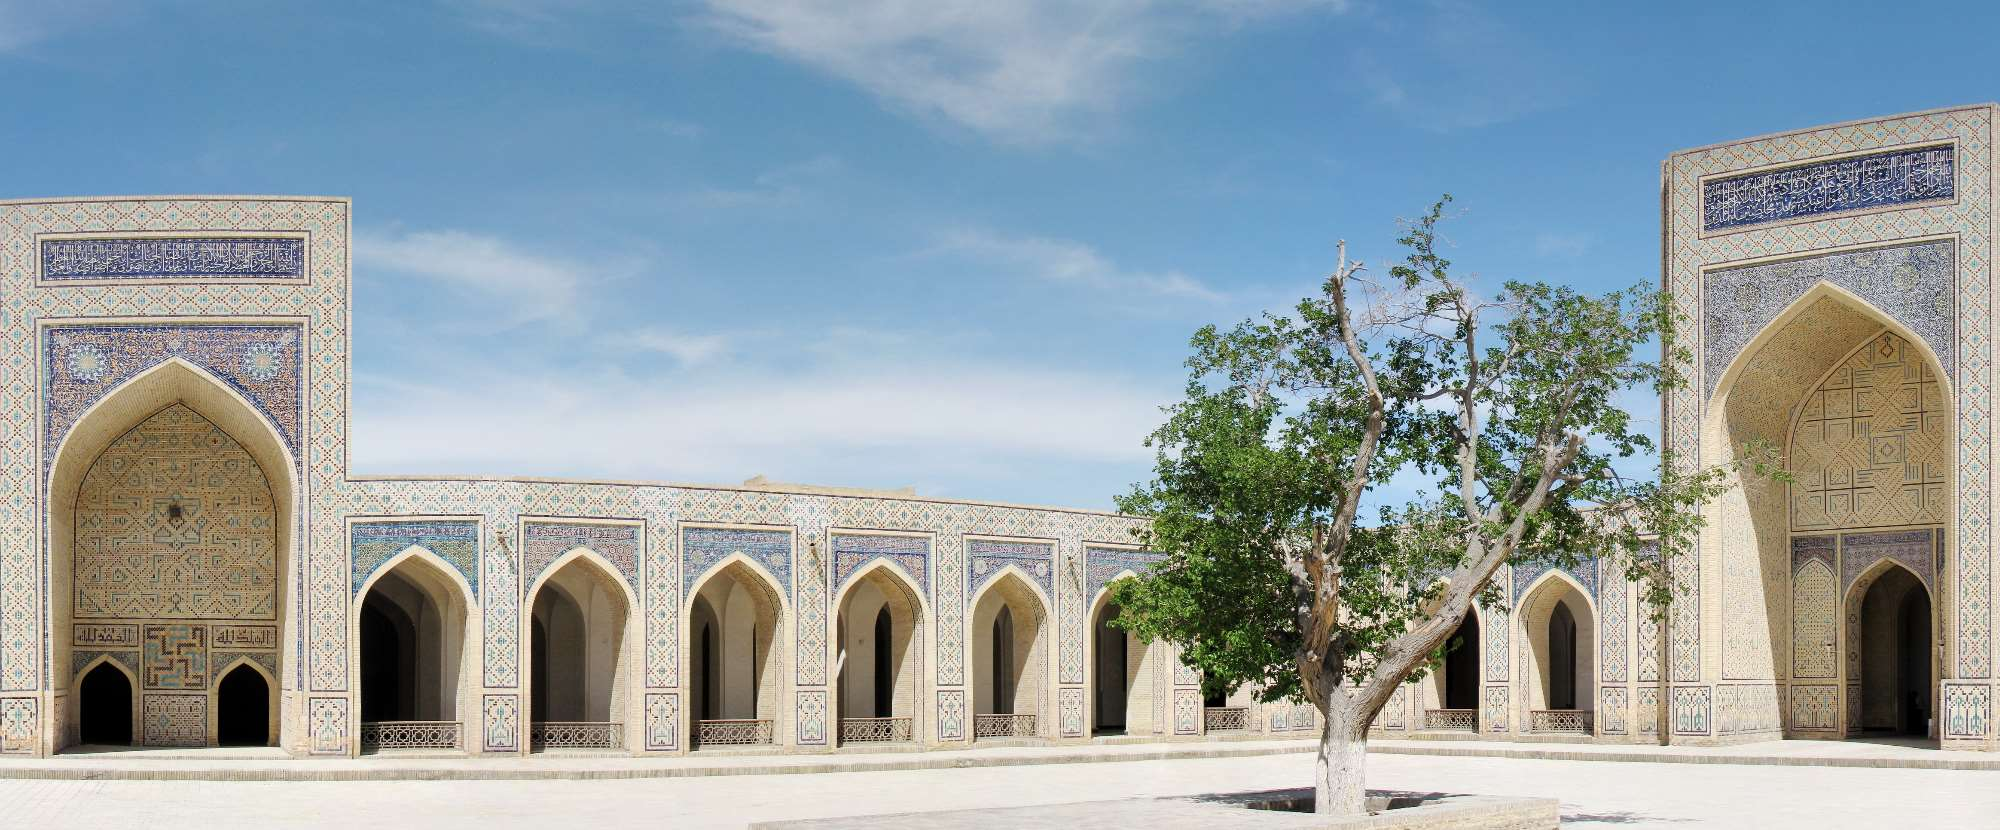 21 Incredible Landmarks in Uzbekistan You Don't Want to Miss